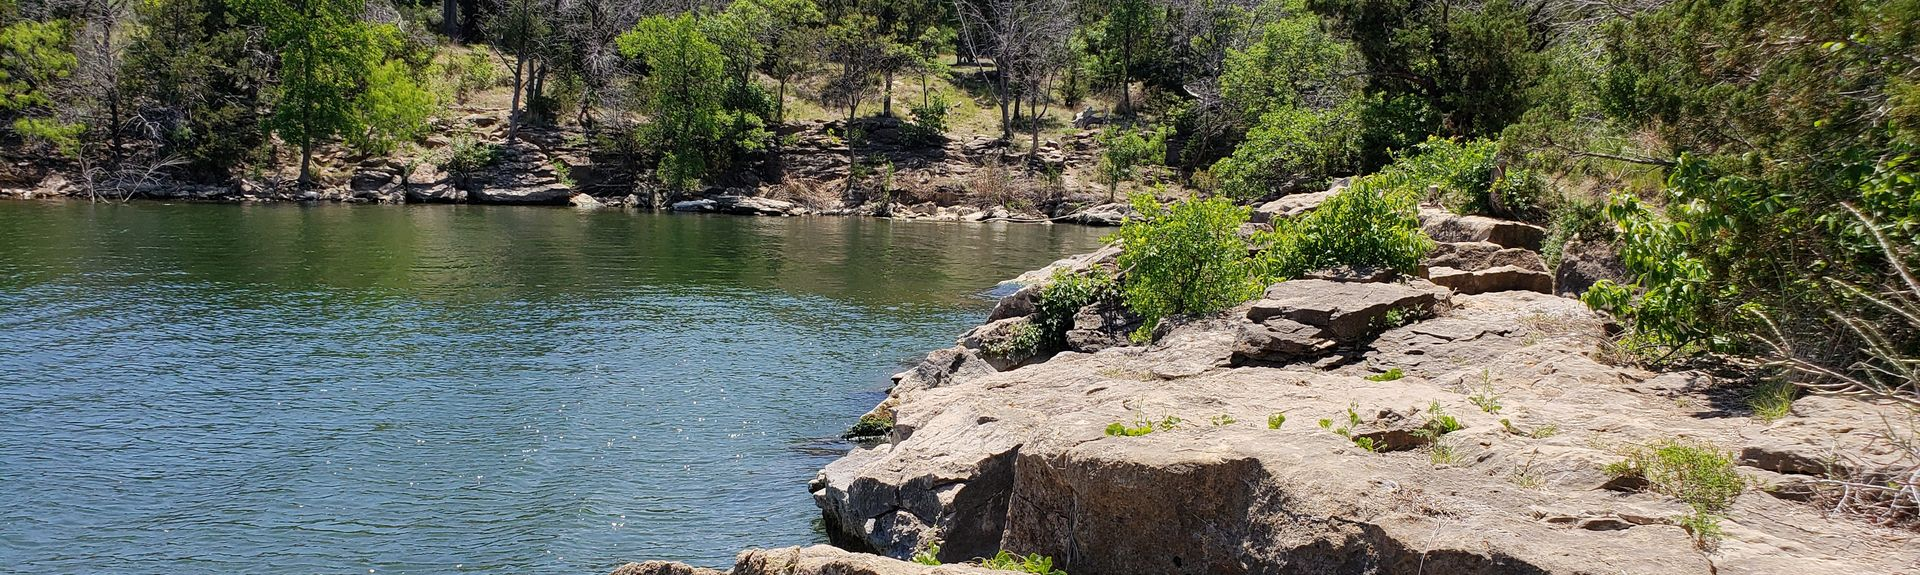 Possum Kingdom Lake, TX, USA